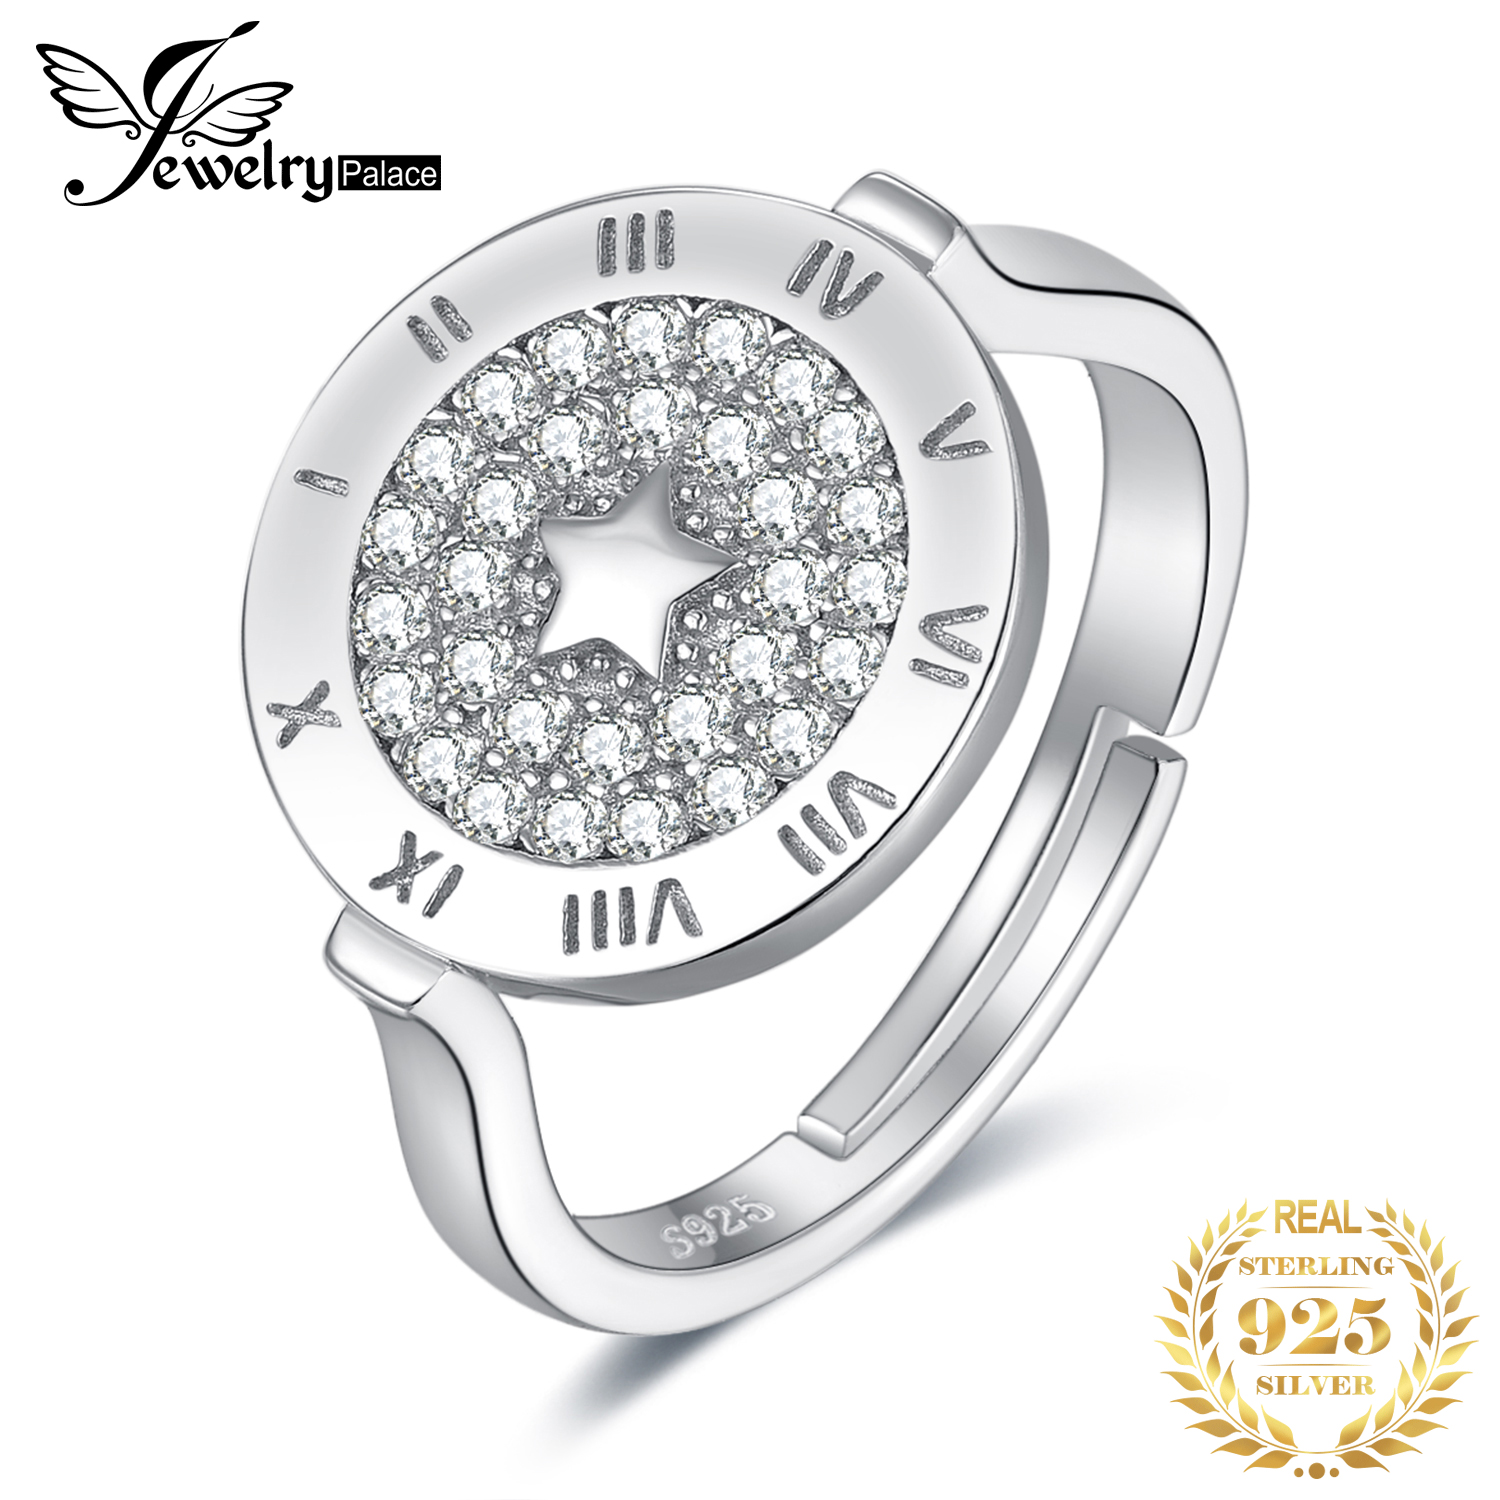 JewelryPalace Round Cubic Zirconia Star Circular Etched Roman  Numeral Adjustable Open Promise Ring 925 Sterling Silver RingsRings